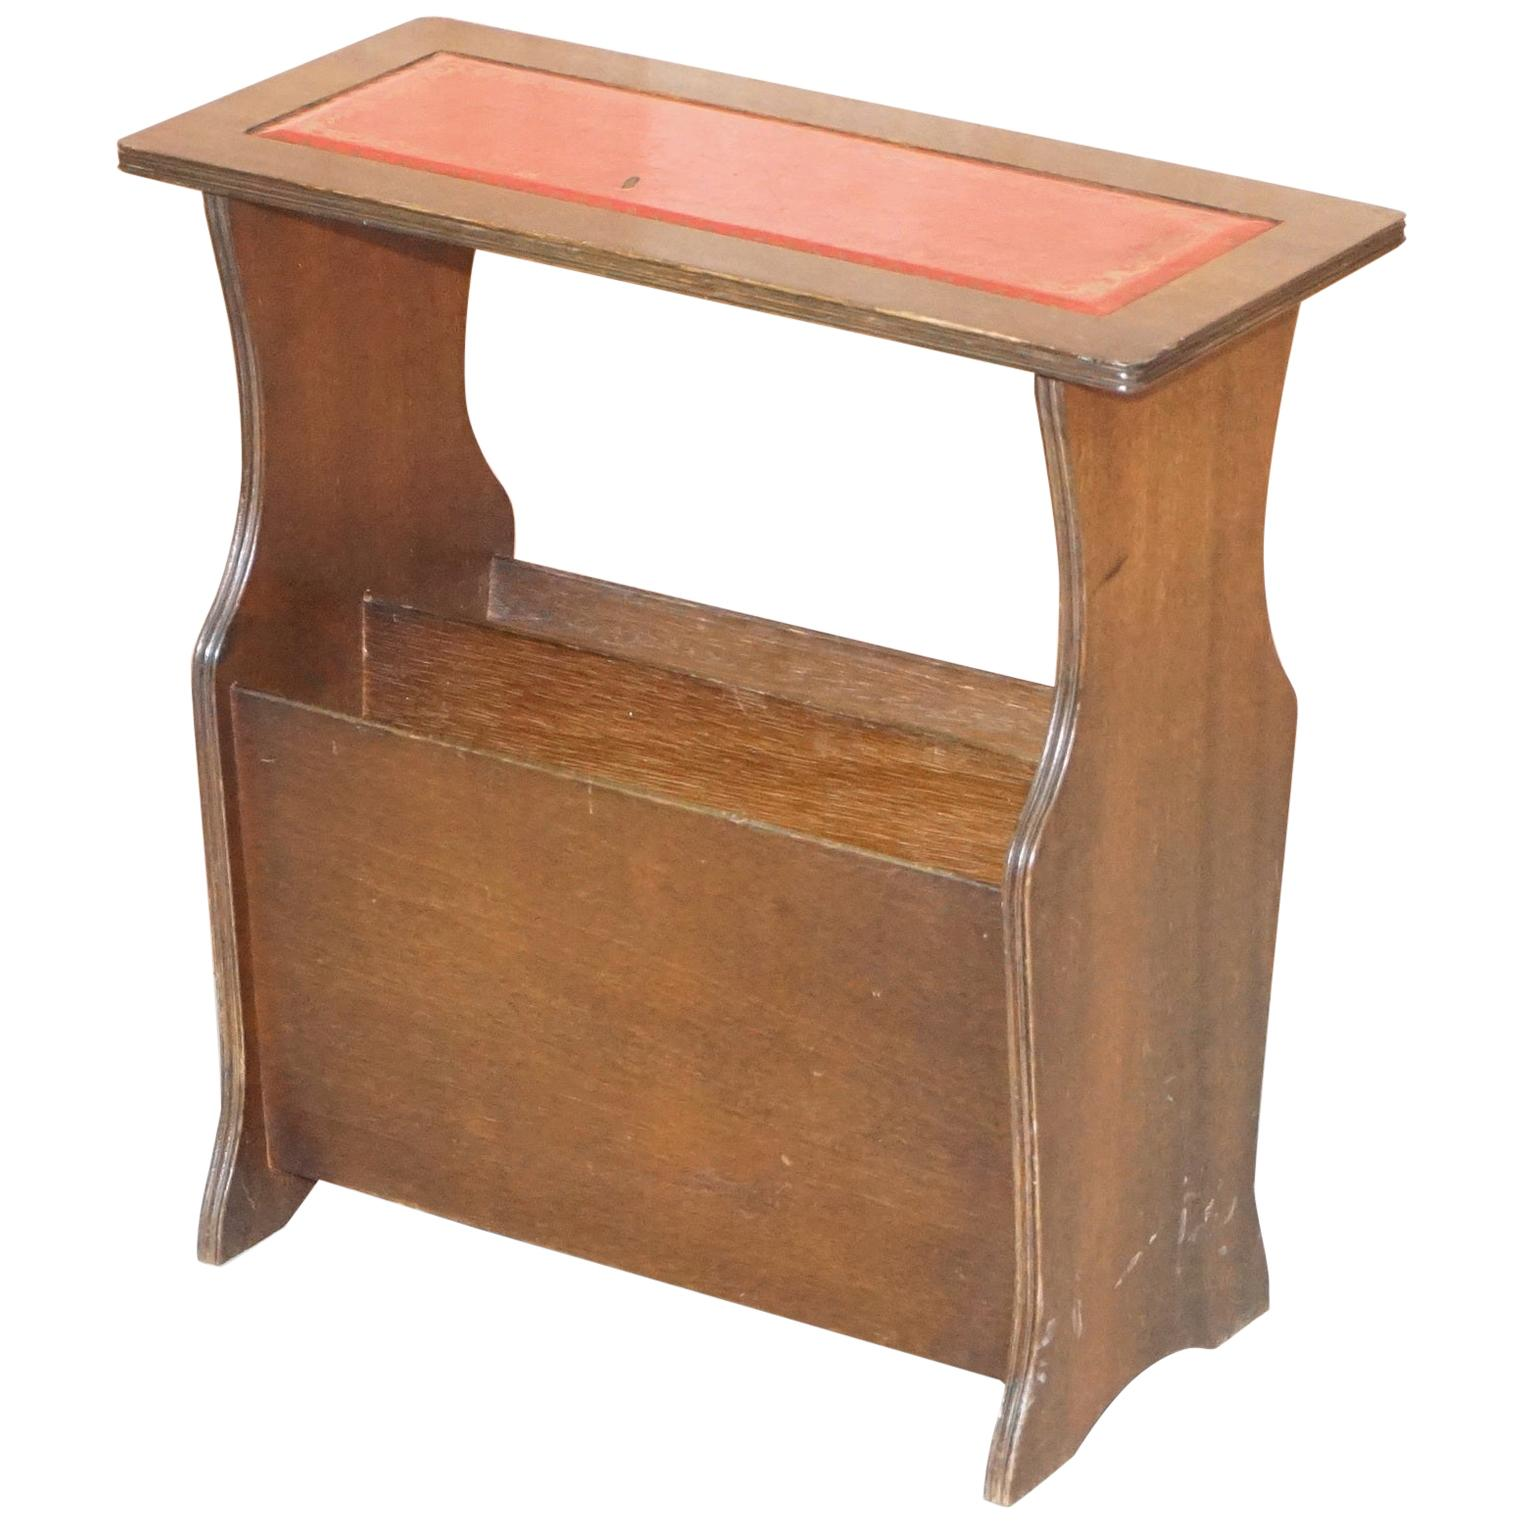 Hardwood with Faded Oxblood Leather Top Bevan Funnell Side Table Magazine Rack